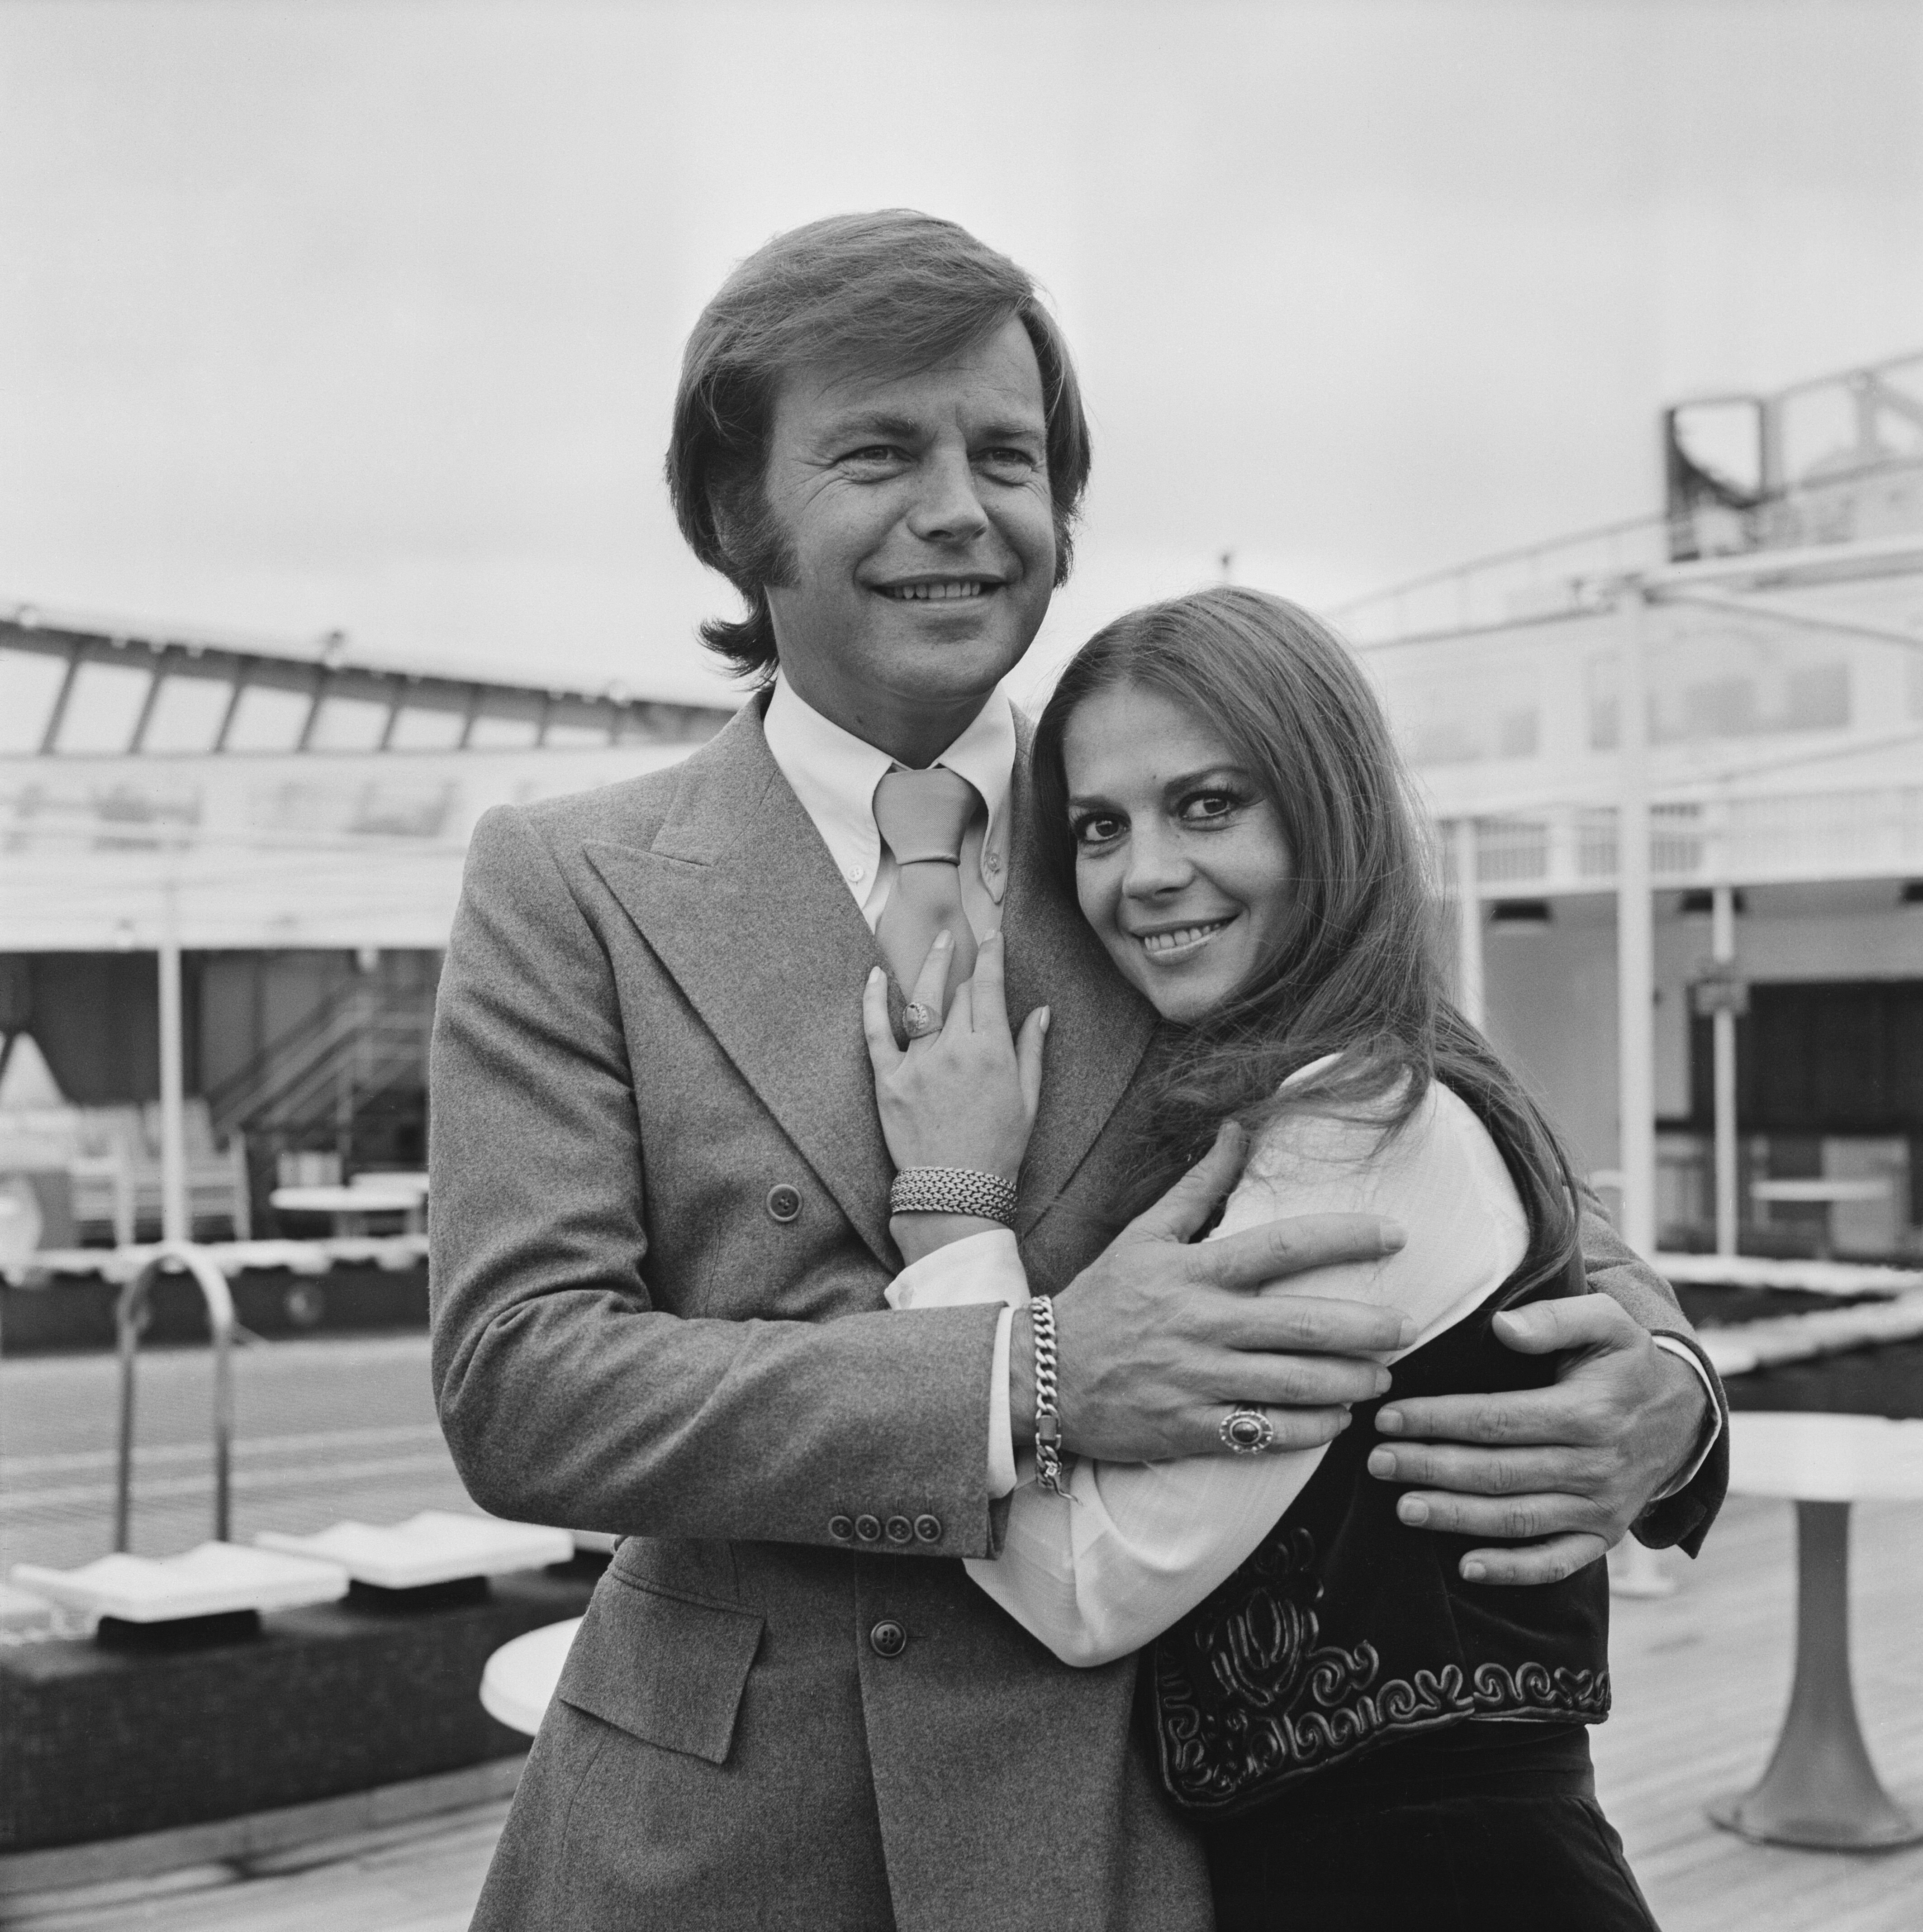 Newlyweds Robert Wagner and Natalie Wood,1972 | Source: Getty Images